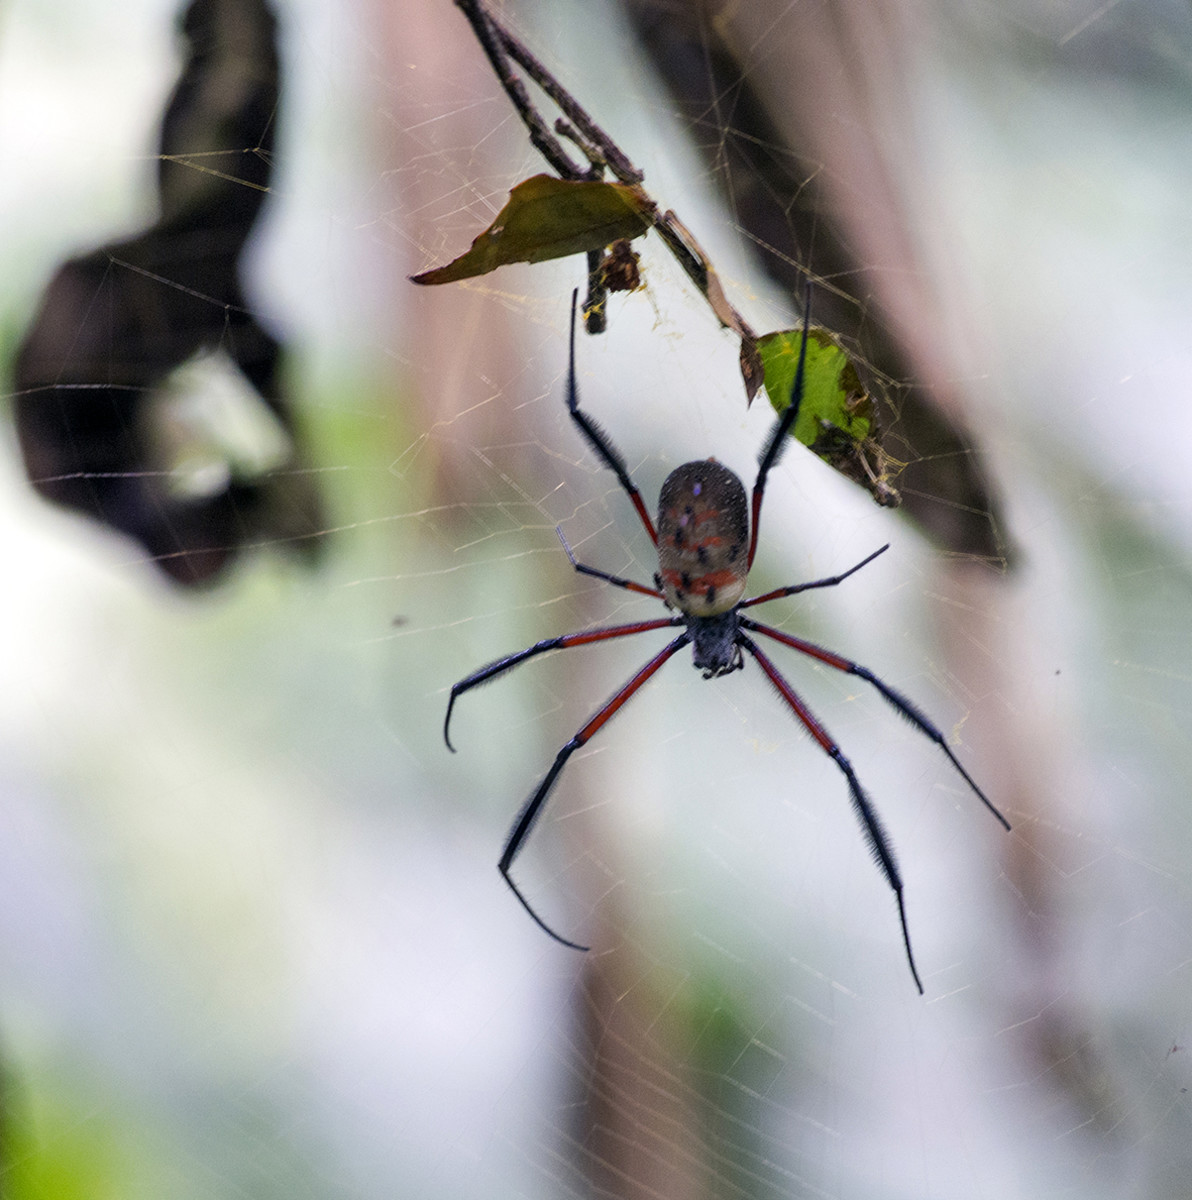 This spider looks scary but is probably not at all poisonous. Photo: Di Robinson